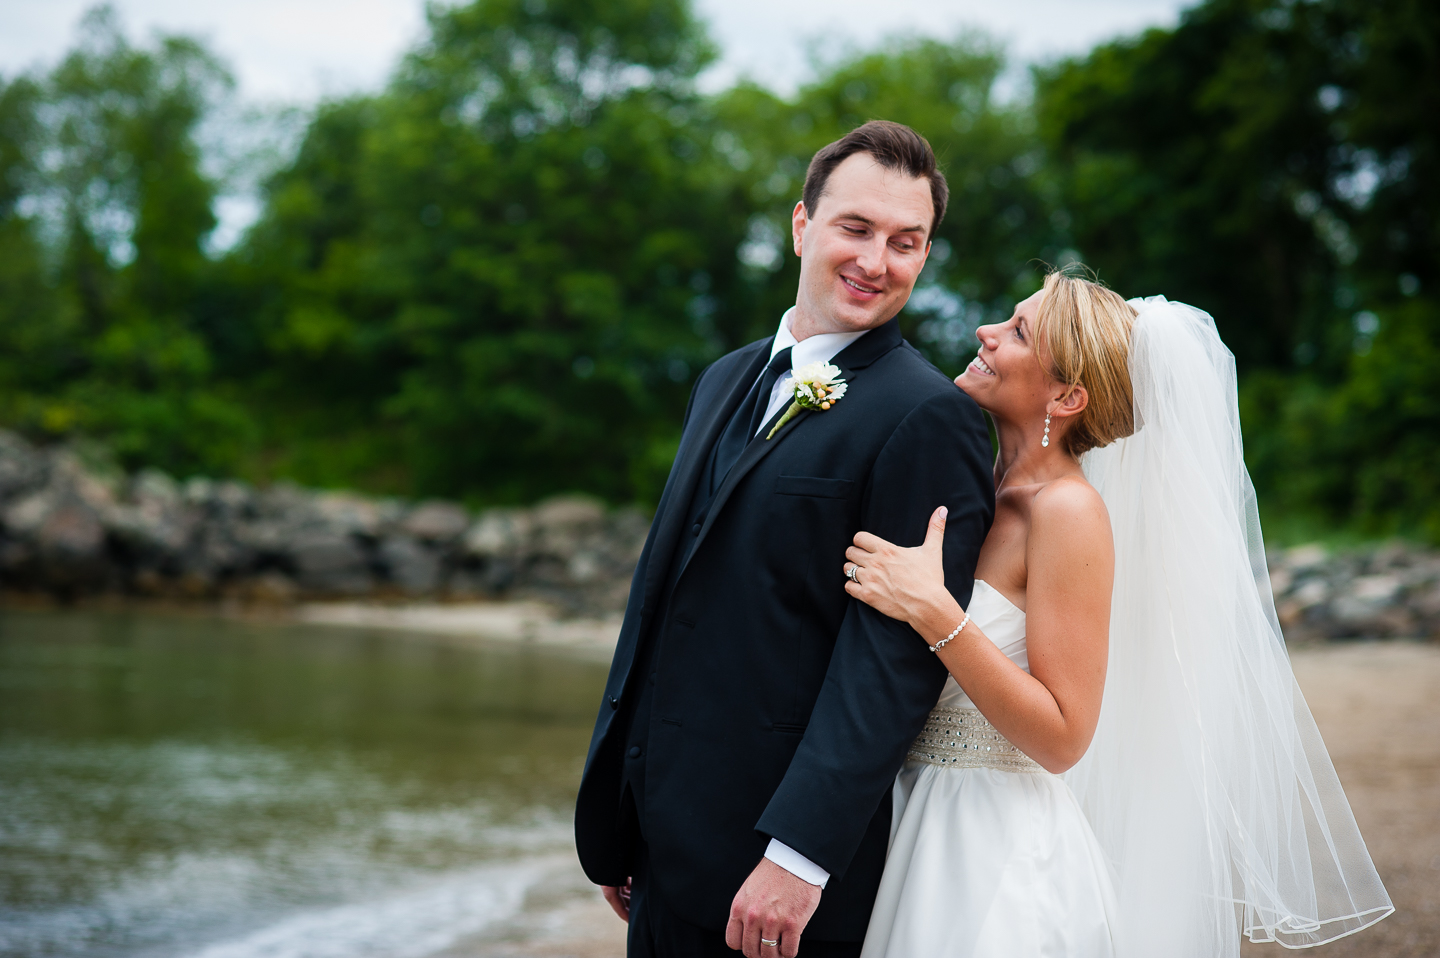 an adorable bride and groom look at each other for this couples portrait